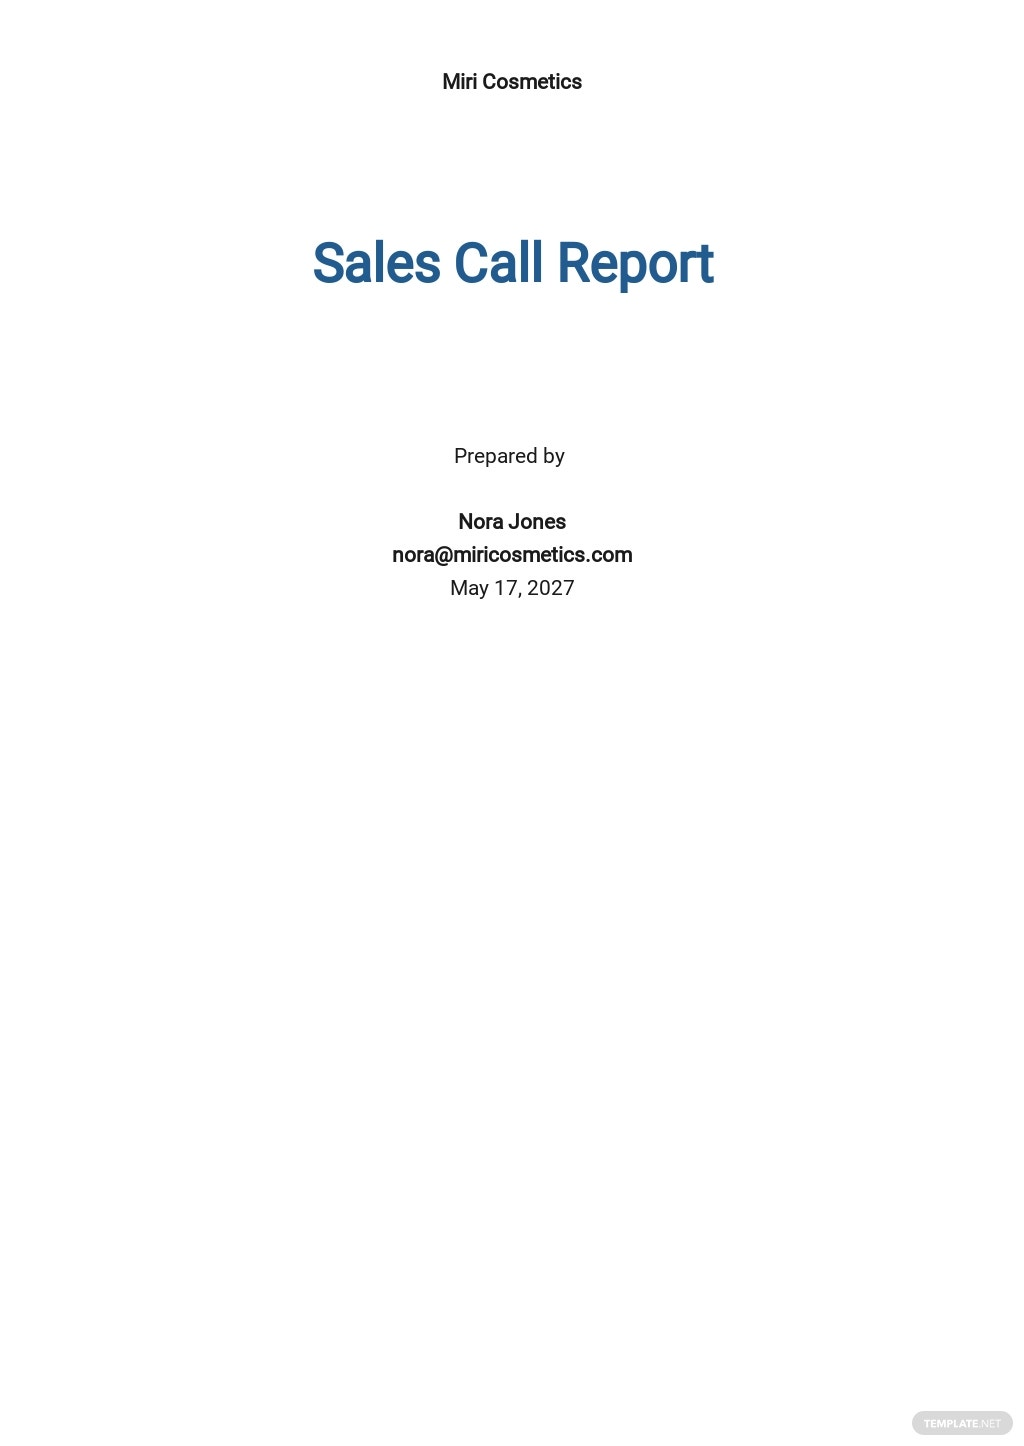 Free Sales Call Report Template.jpe